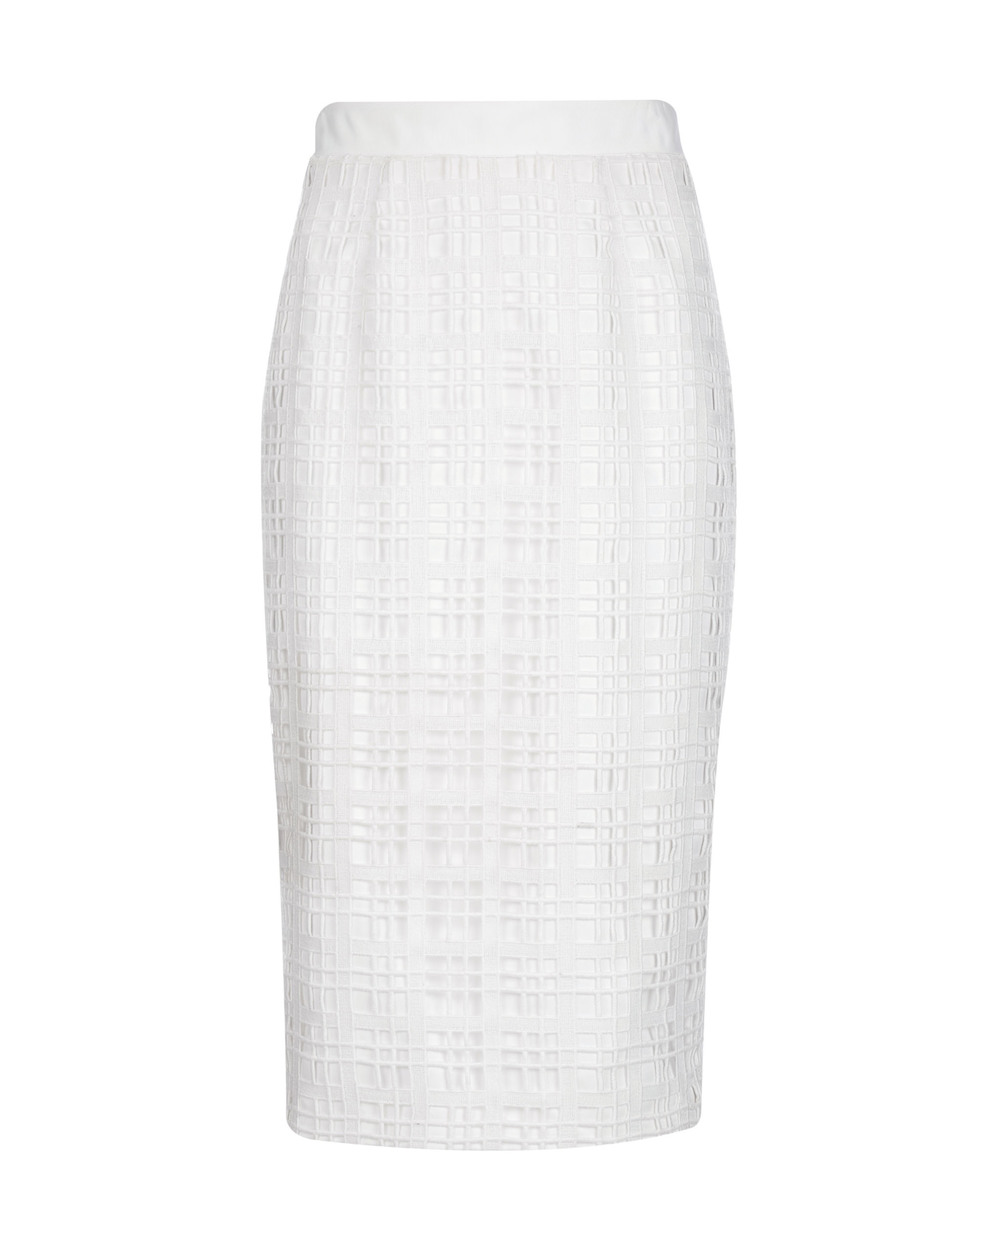 Ted Baker Serenti Pencil Skirt $245